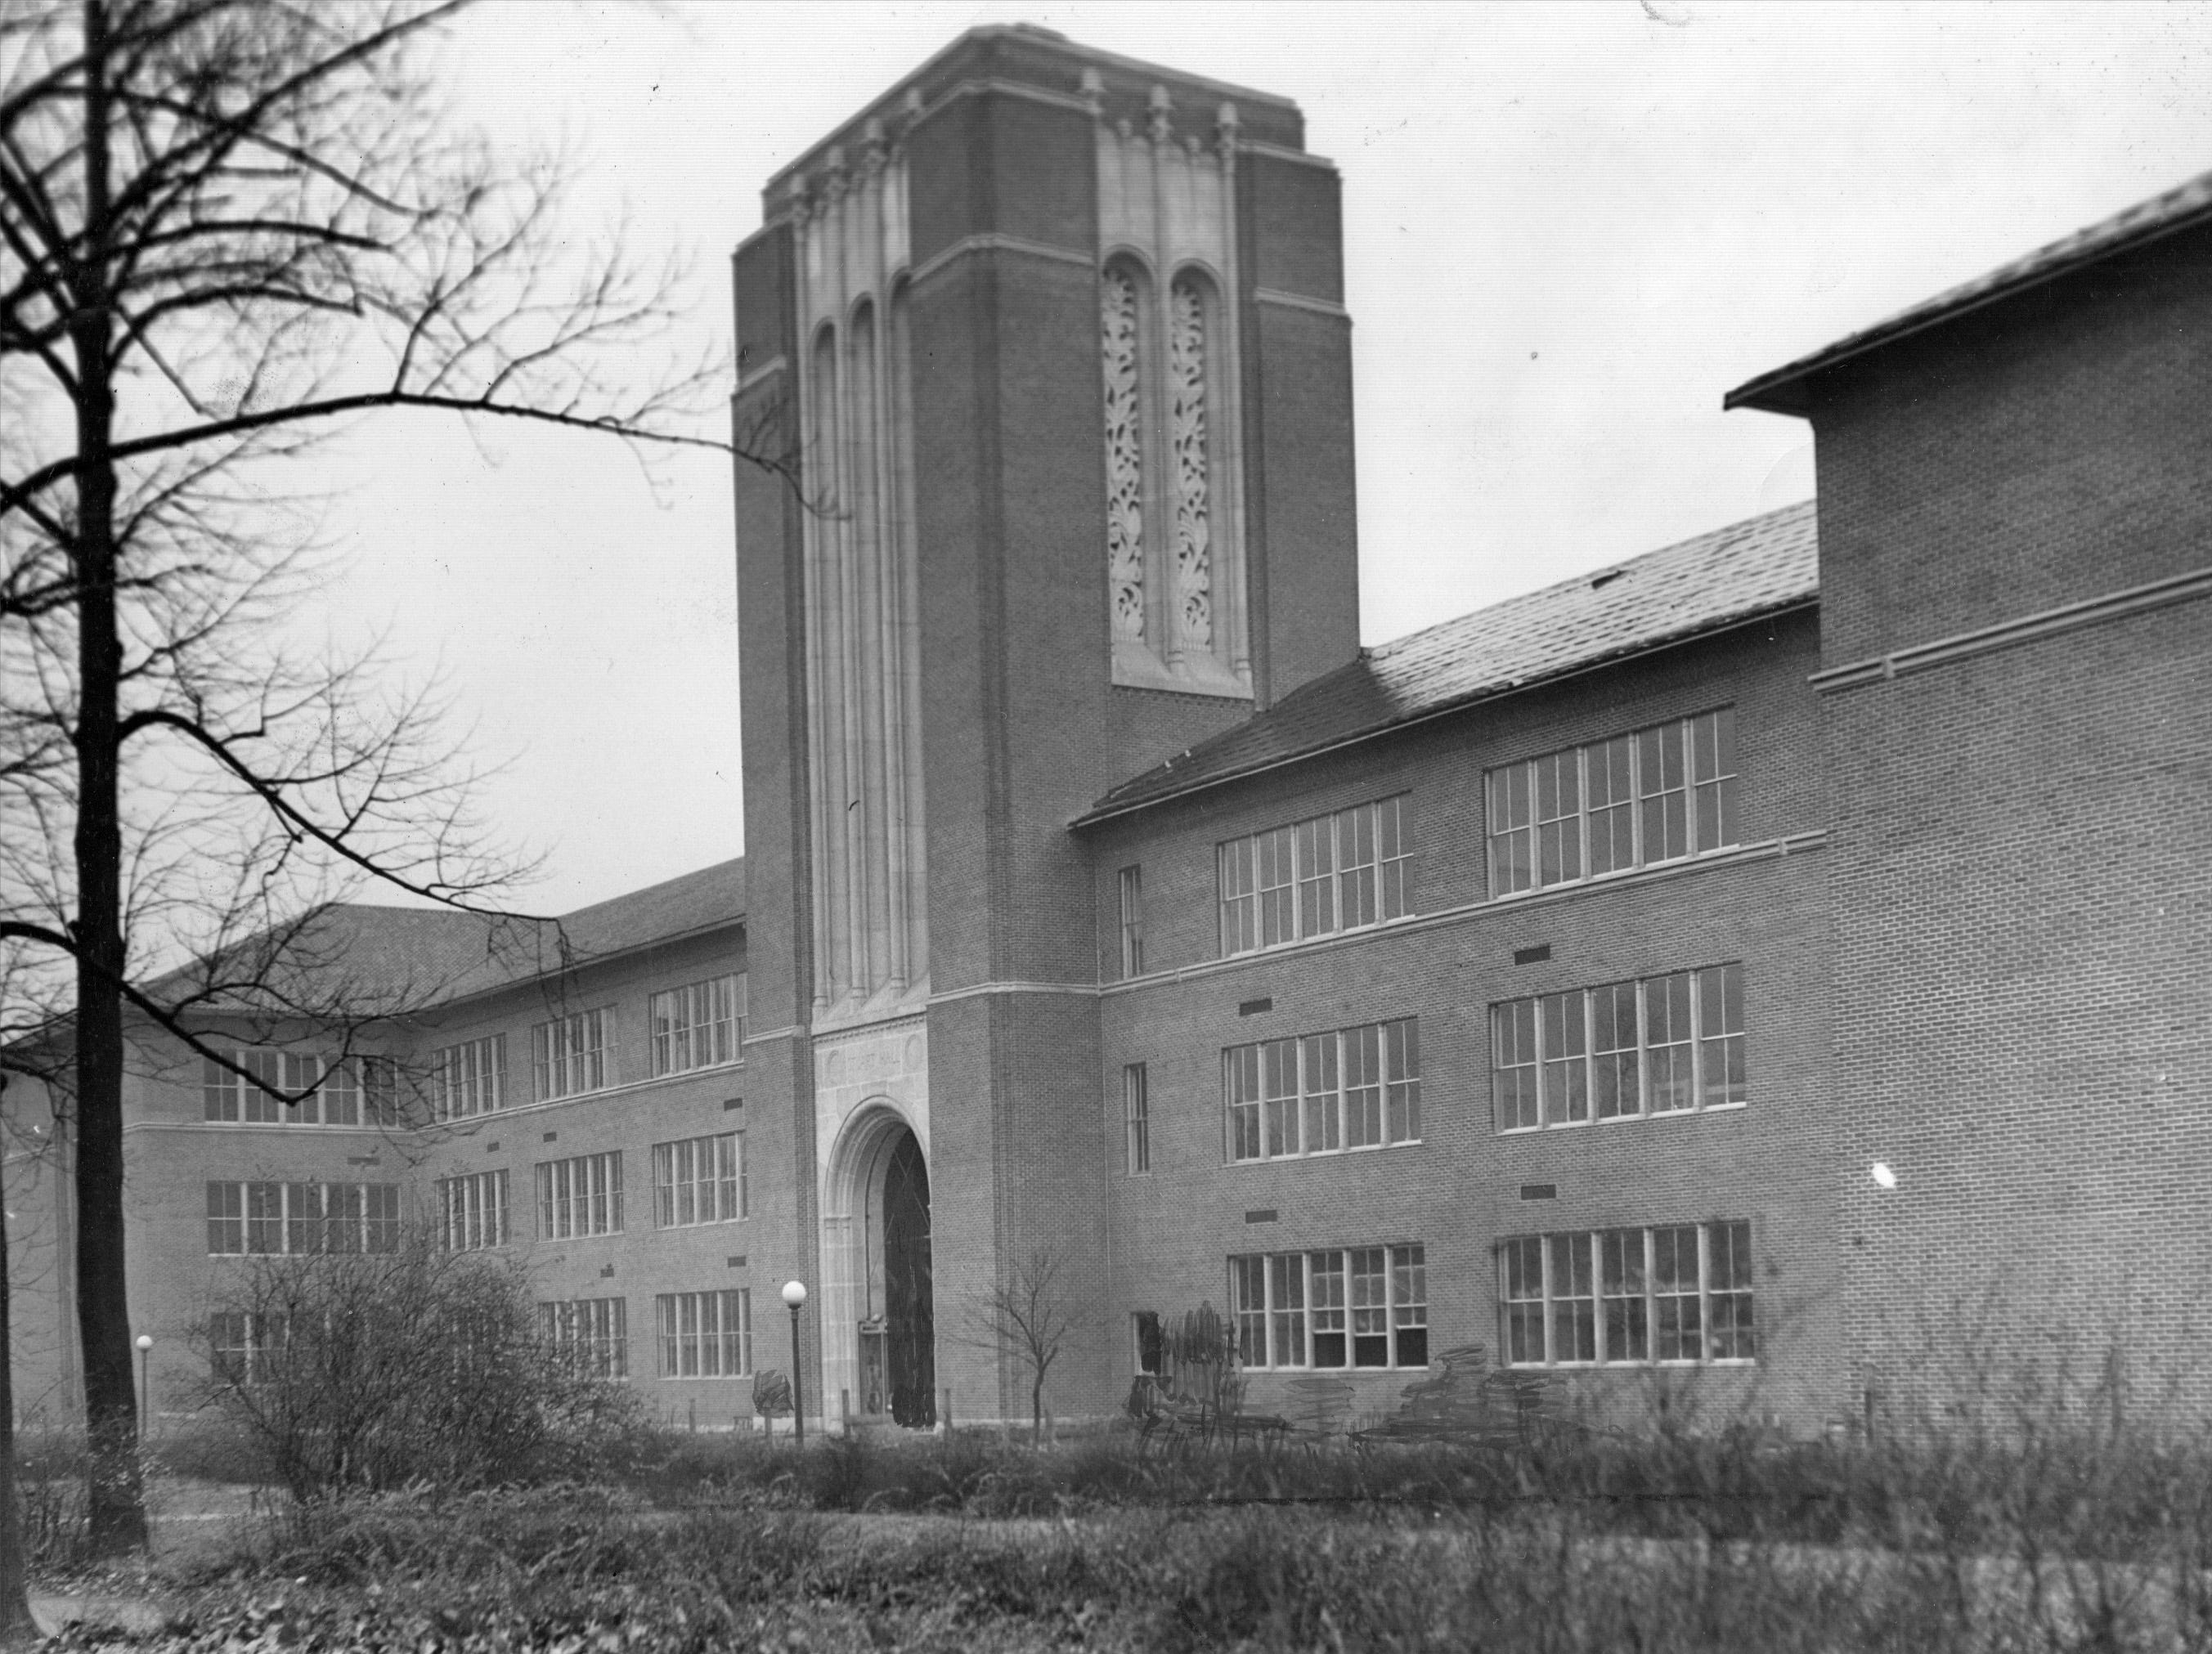 The Milo H. Stuart building n the campus of Arsenal Tech High School was built with a Public Works Administration grant in 1939.